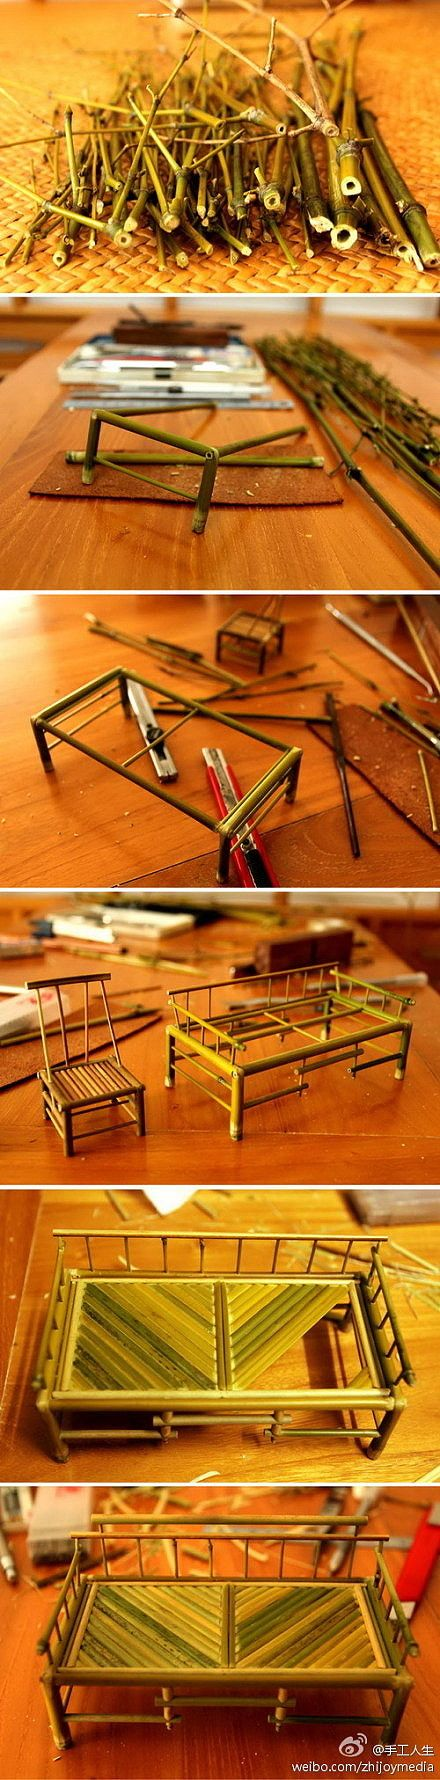 Instead of little bamboo I will use bigger bamboo and make house furniture ^.^: Diy'S, Diy Crafts, Mini Bamboo, Fairy Gardens, Dollhouse, Bamboo Craft, Bamboo Furniture, Miniature